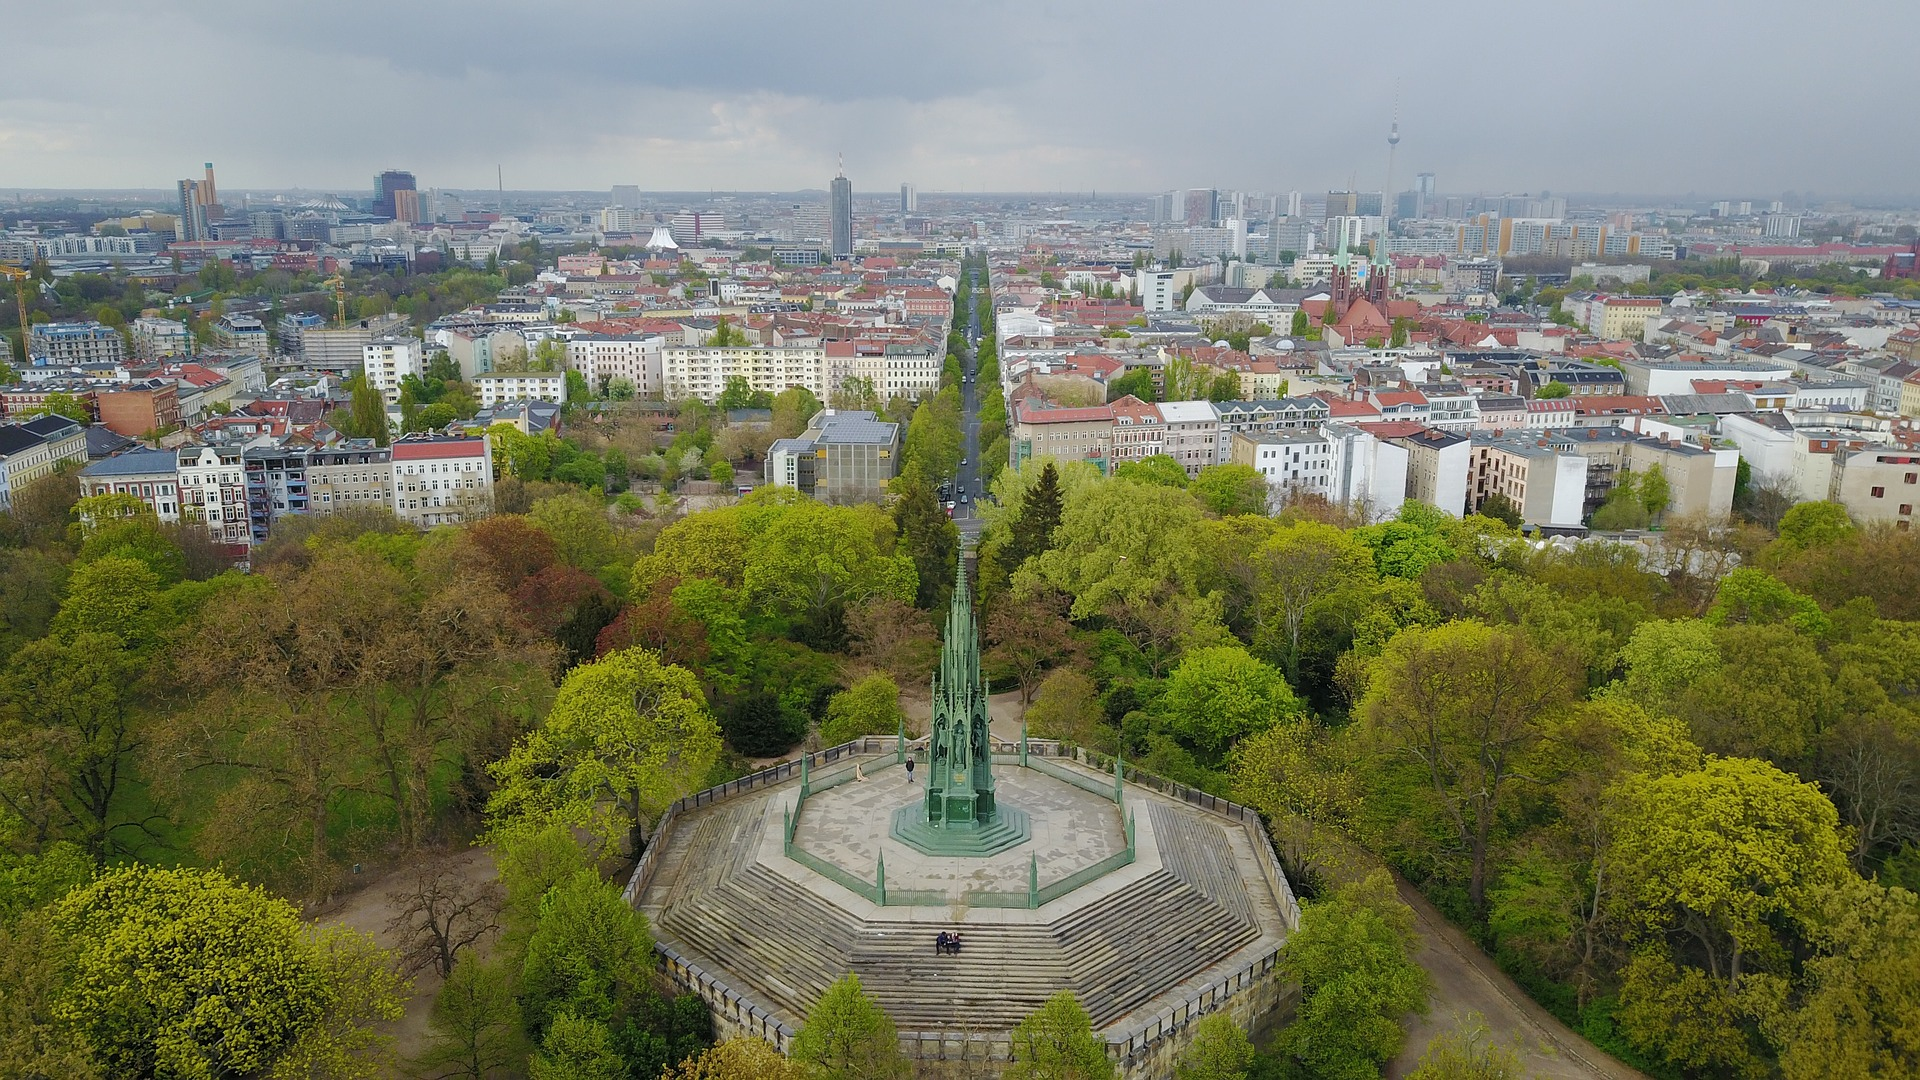 Viktoriapark, park in Berlin, Germany